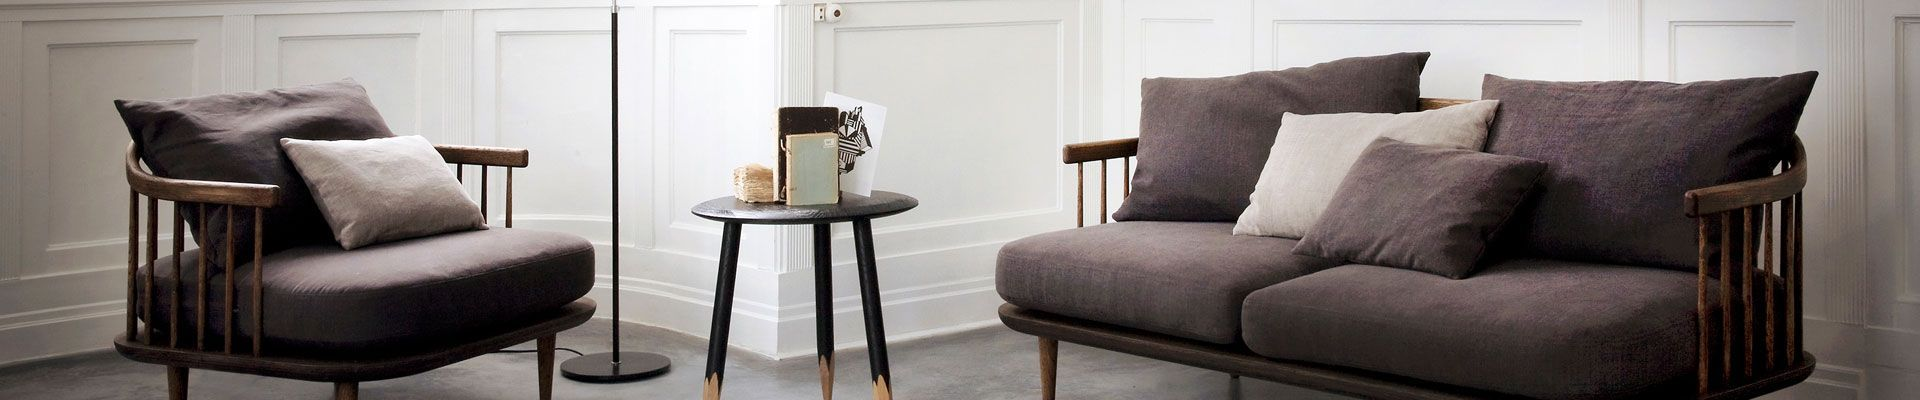 &Tradition fauteuils